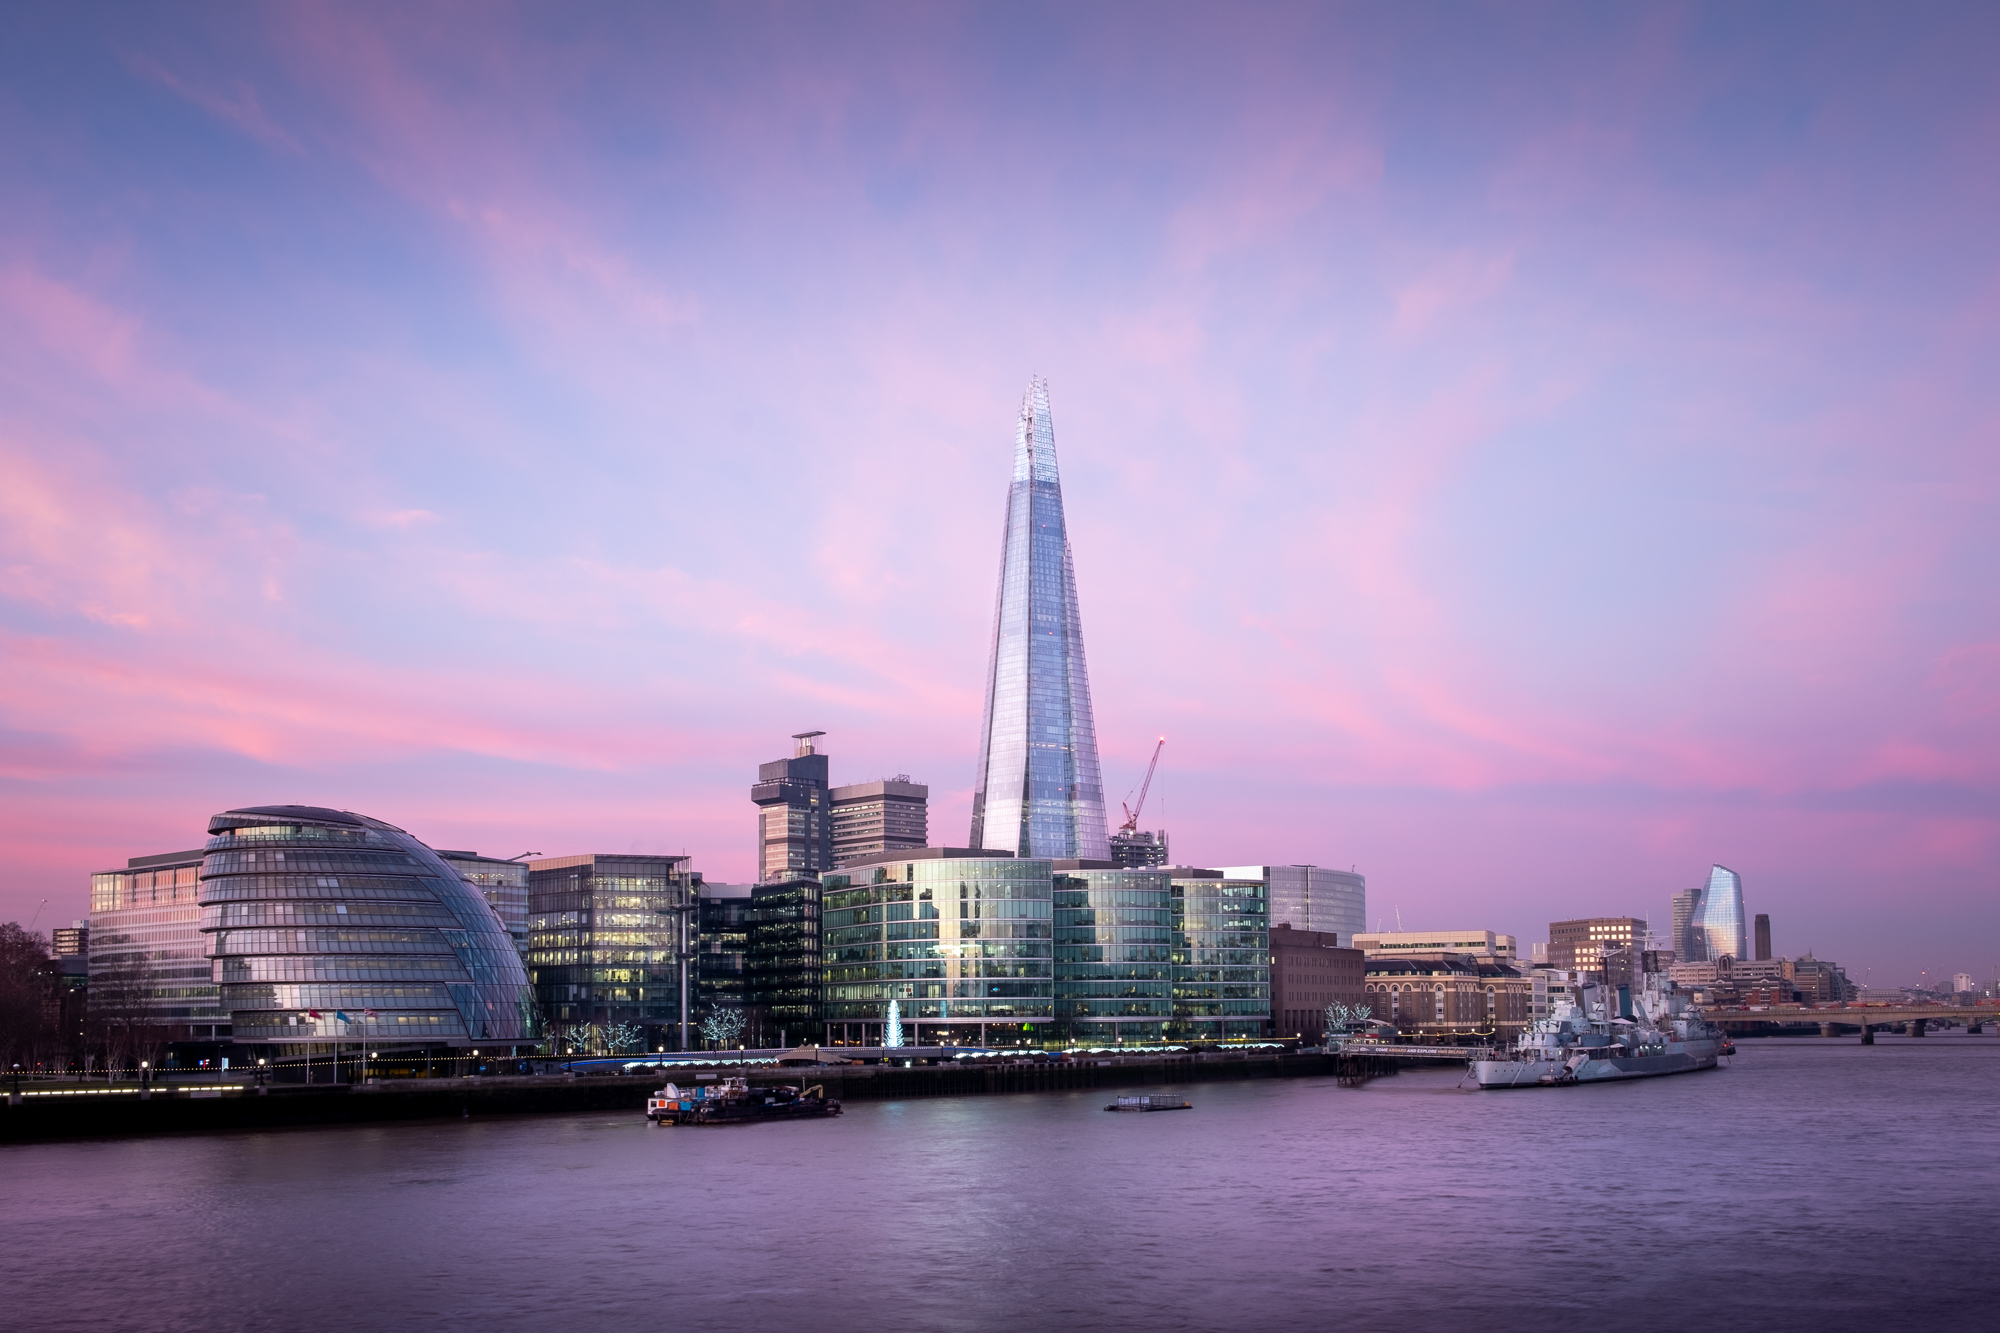 A photo of The Shard and More London Place at sunrise taken by Trevor Sherwin